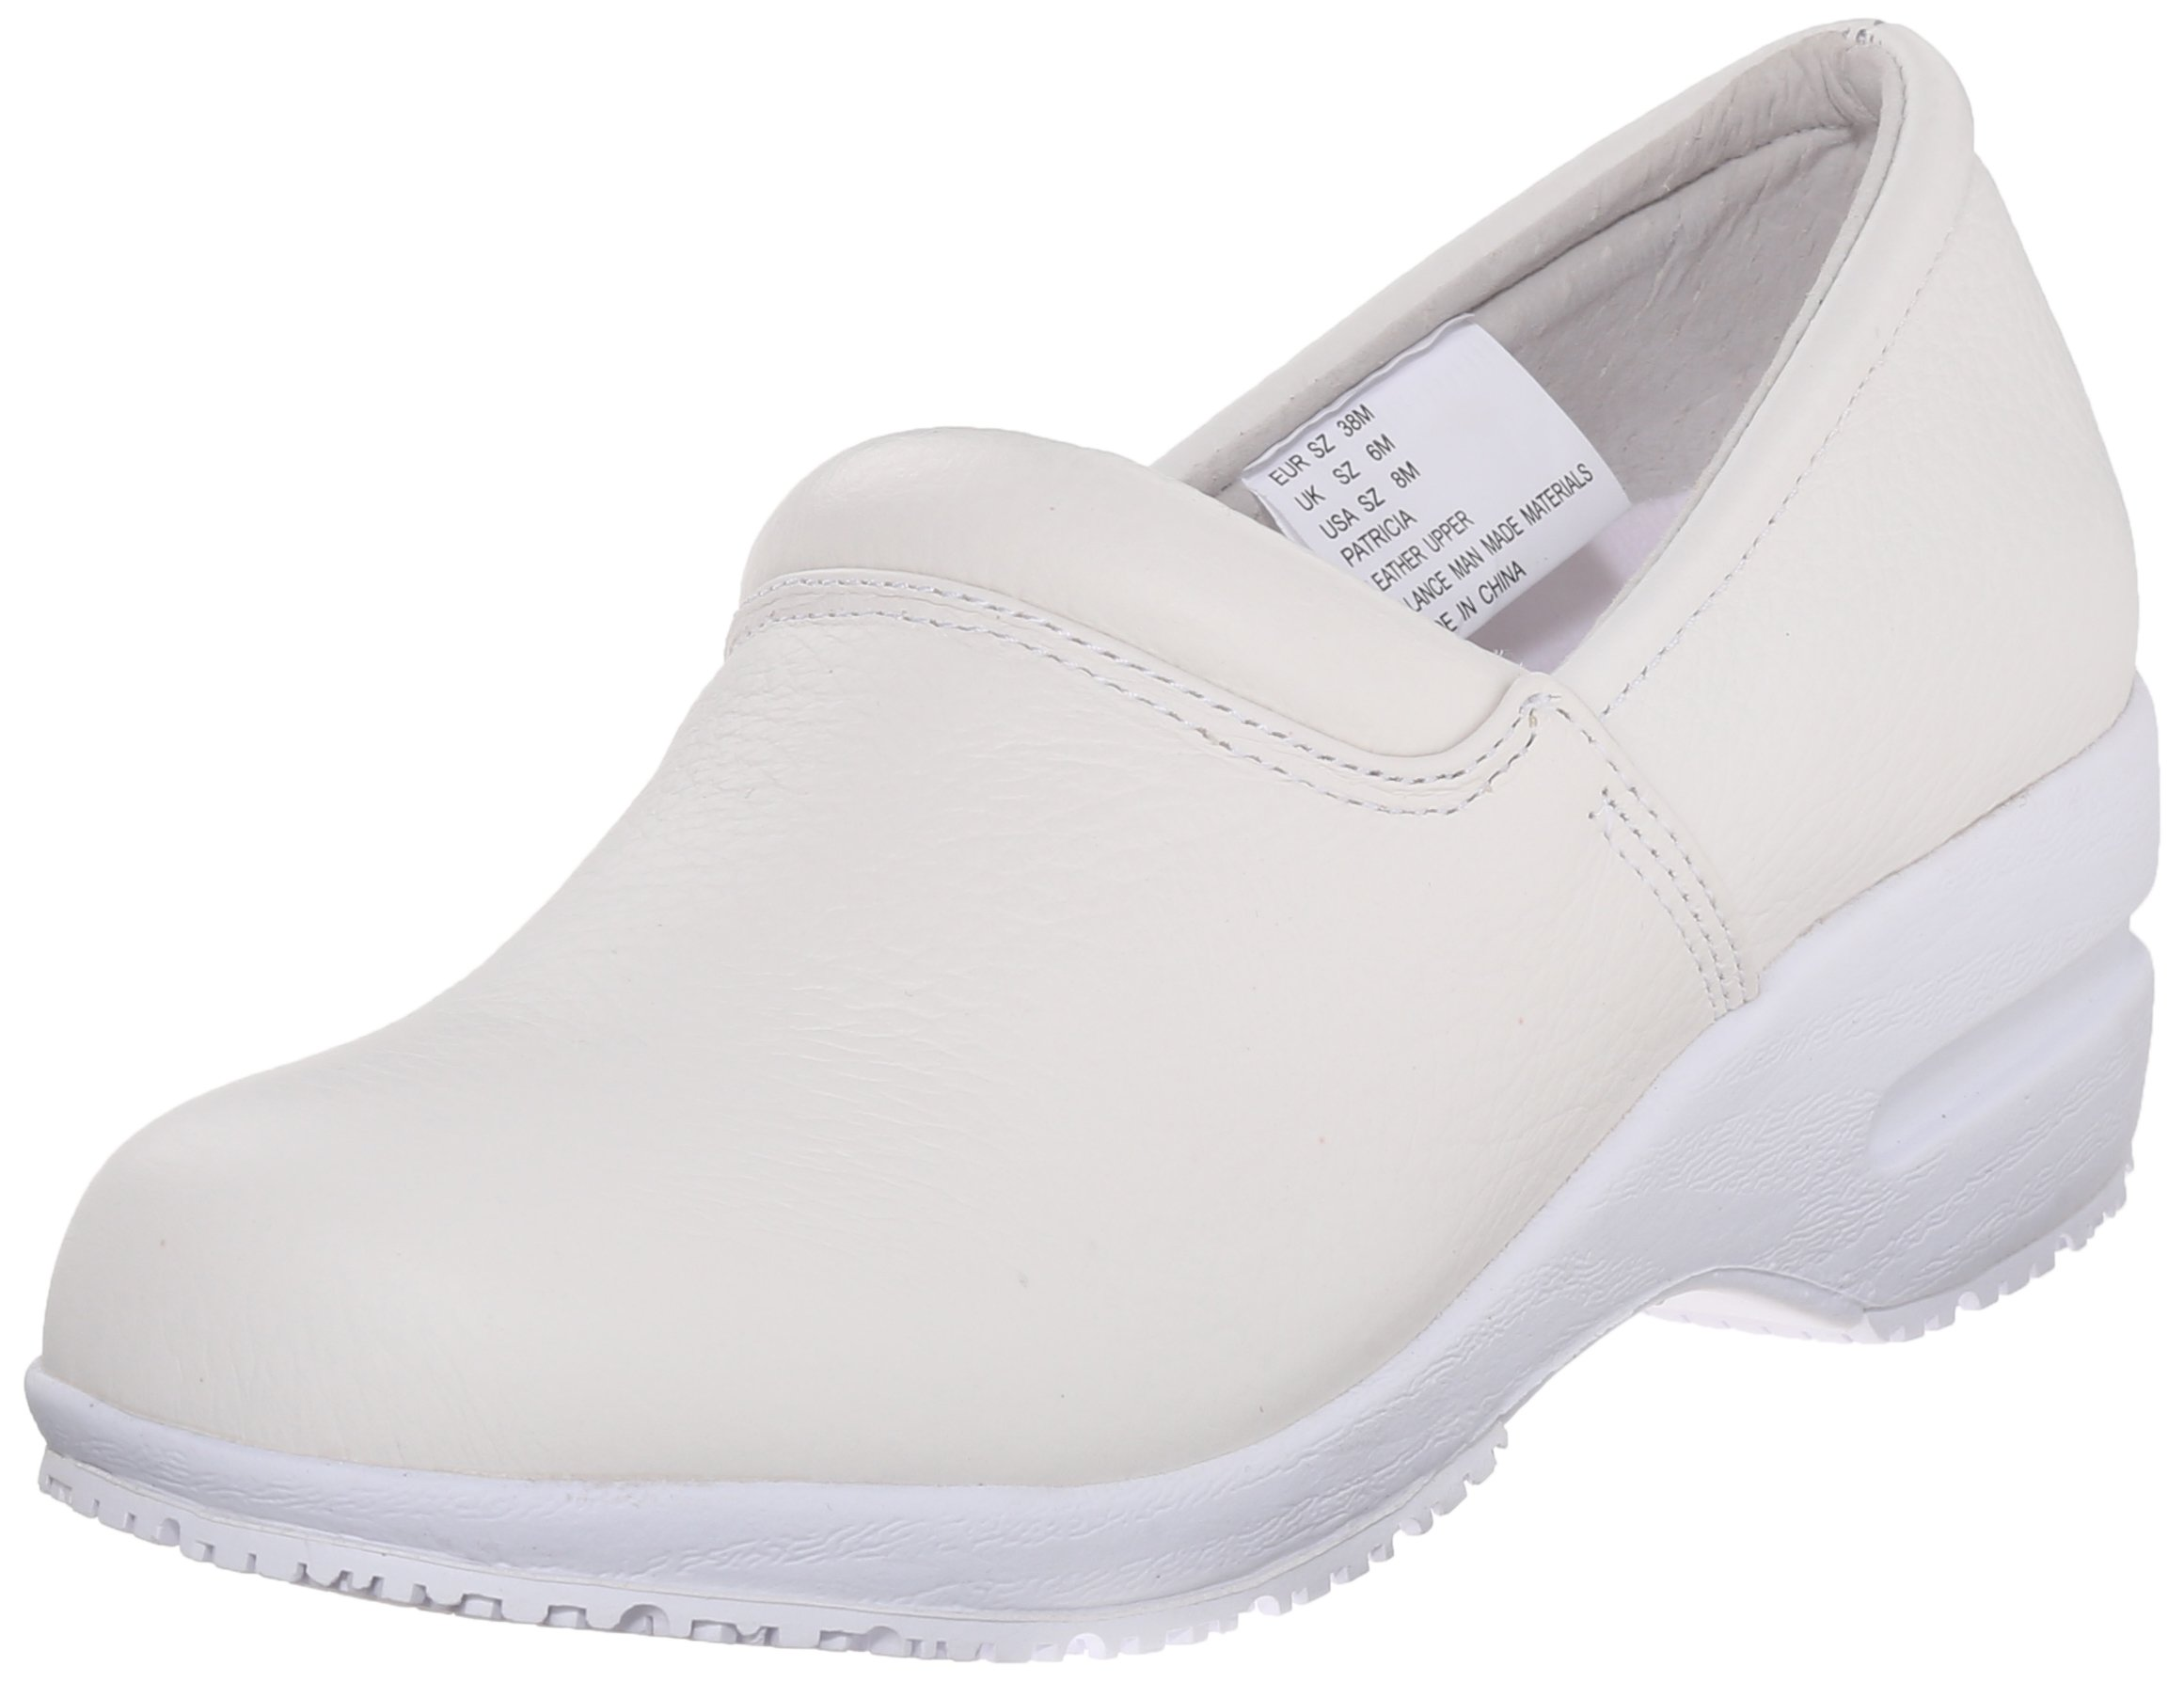 Cherokee Women's Patricia Work Shoe, White, 6.5 M US